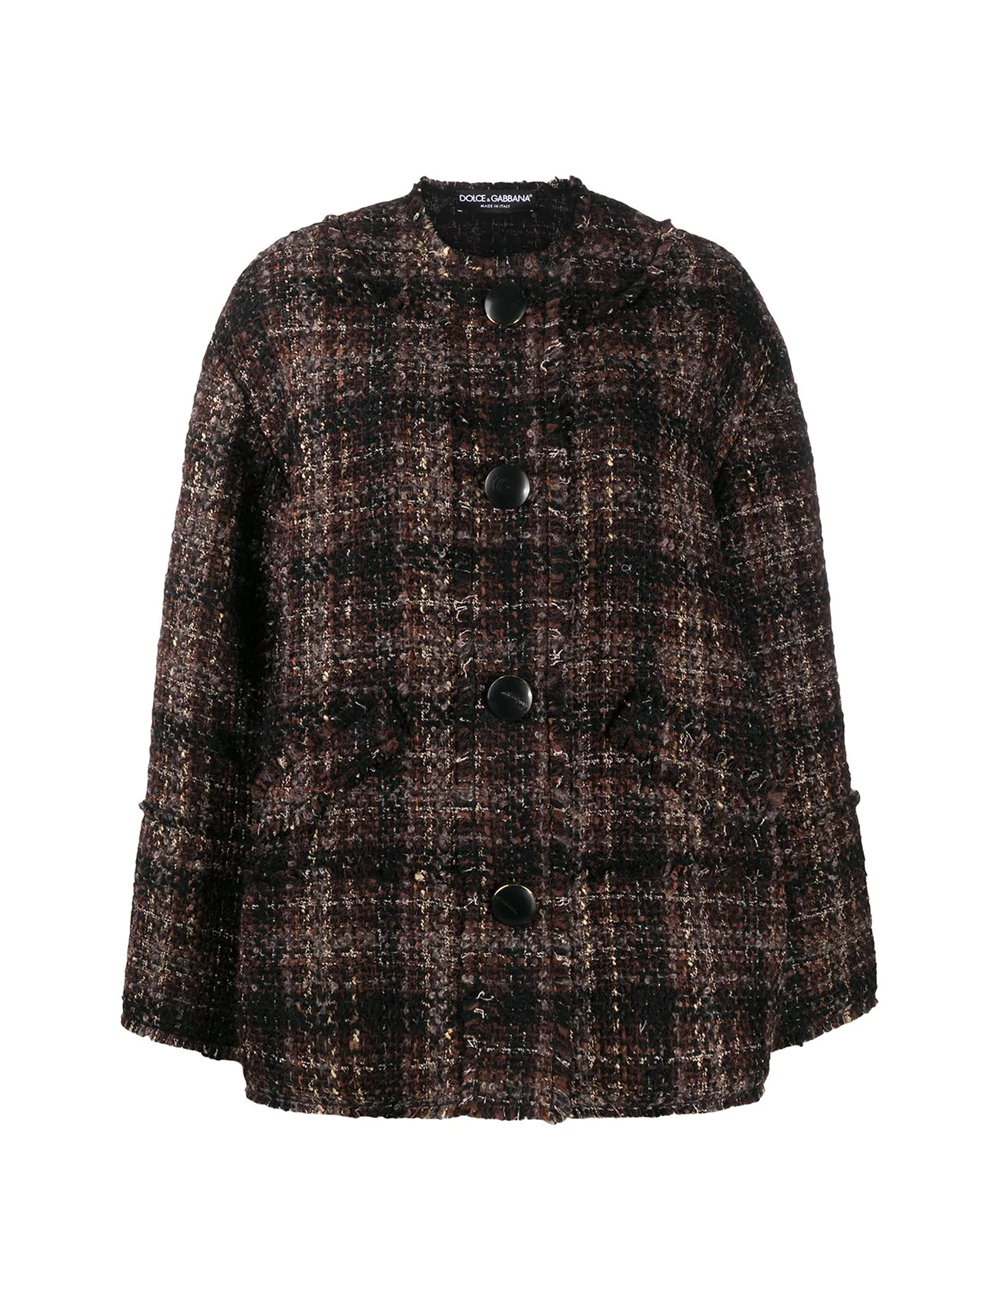 Tweed jacket Dolce Gabbana - BIG BOSS MEGEVE